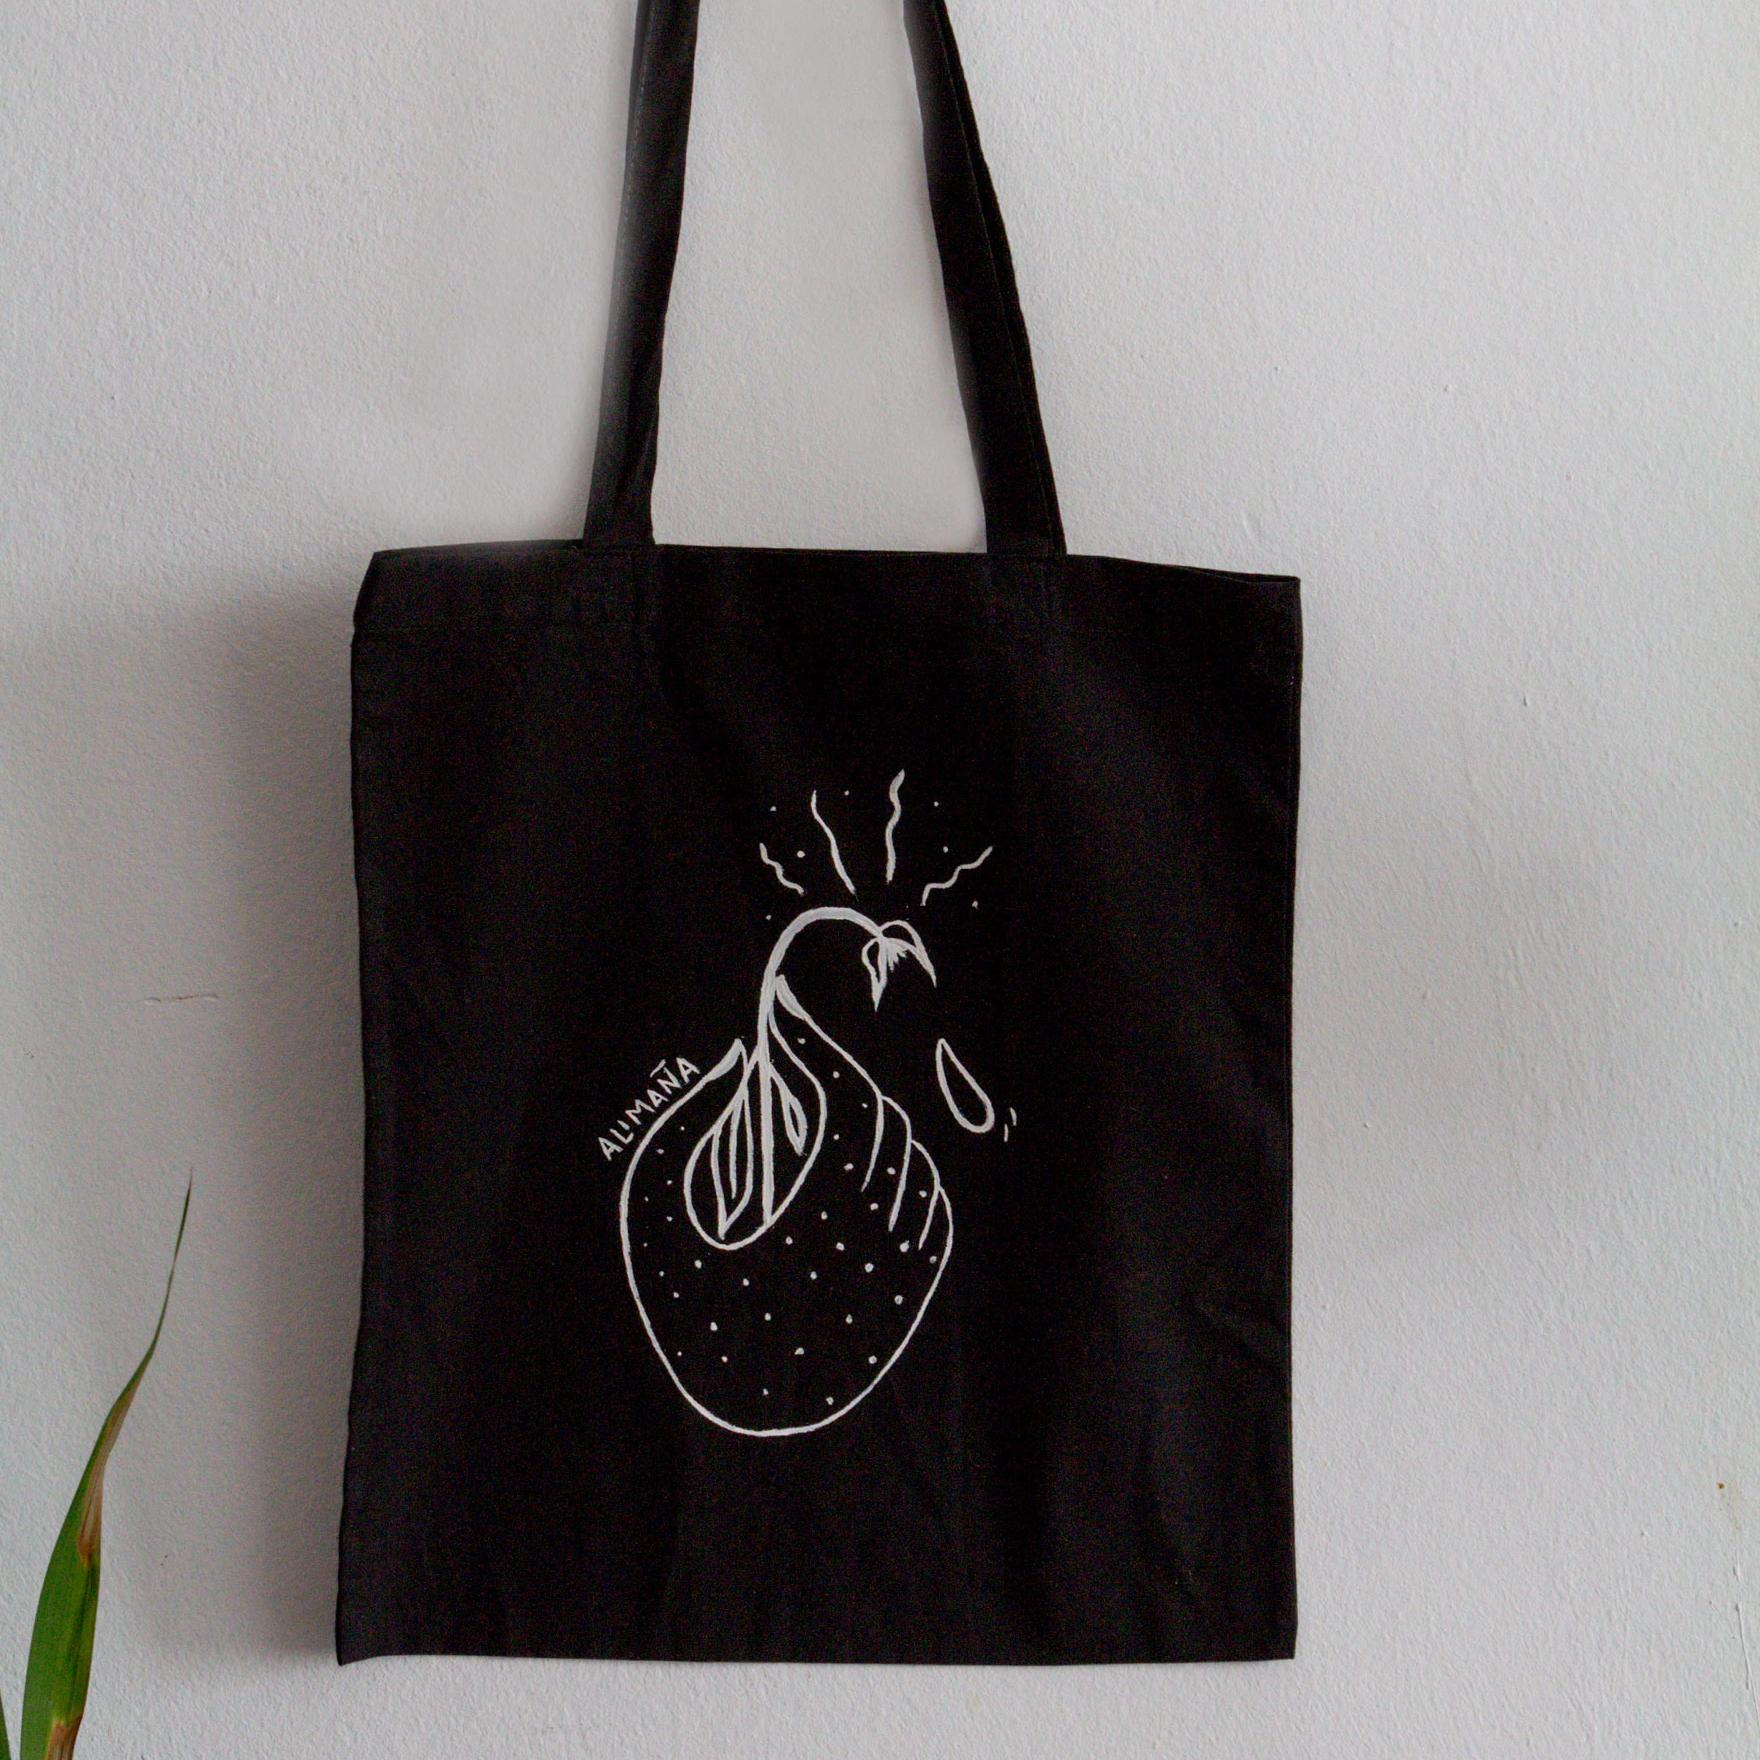 Tote Bag x Vero Cassiani